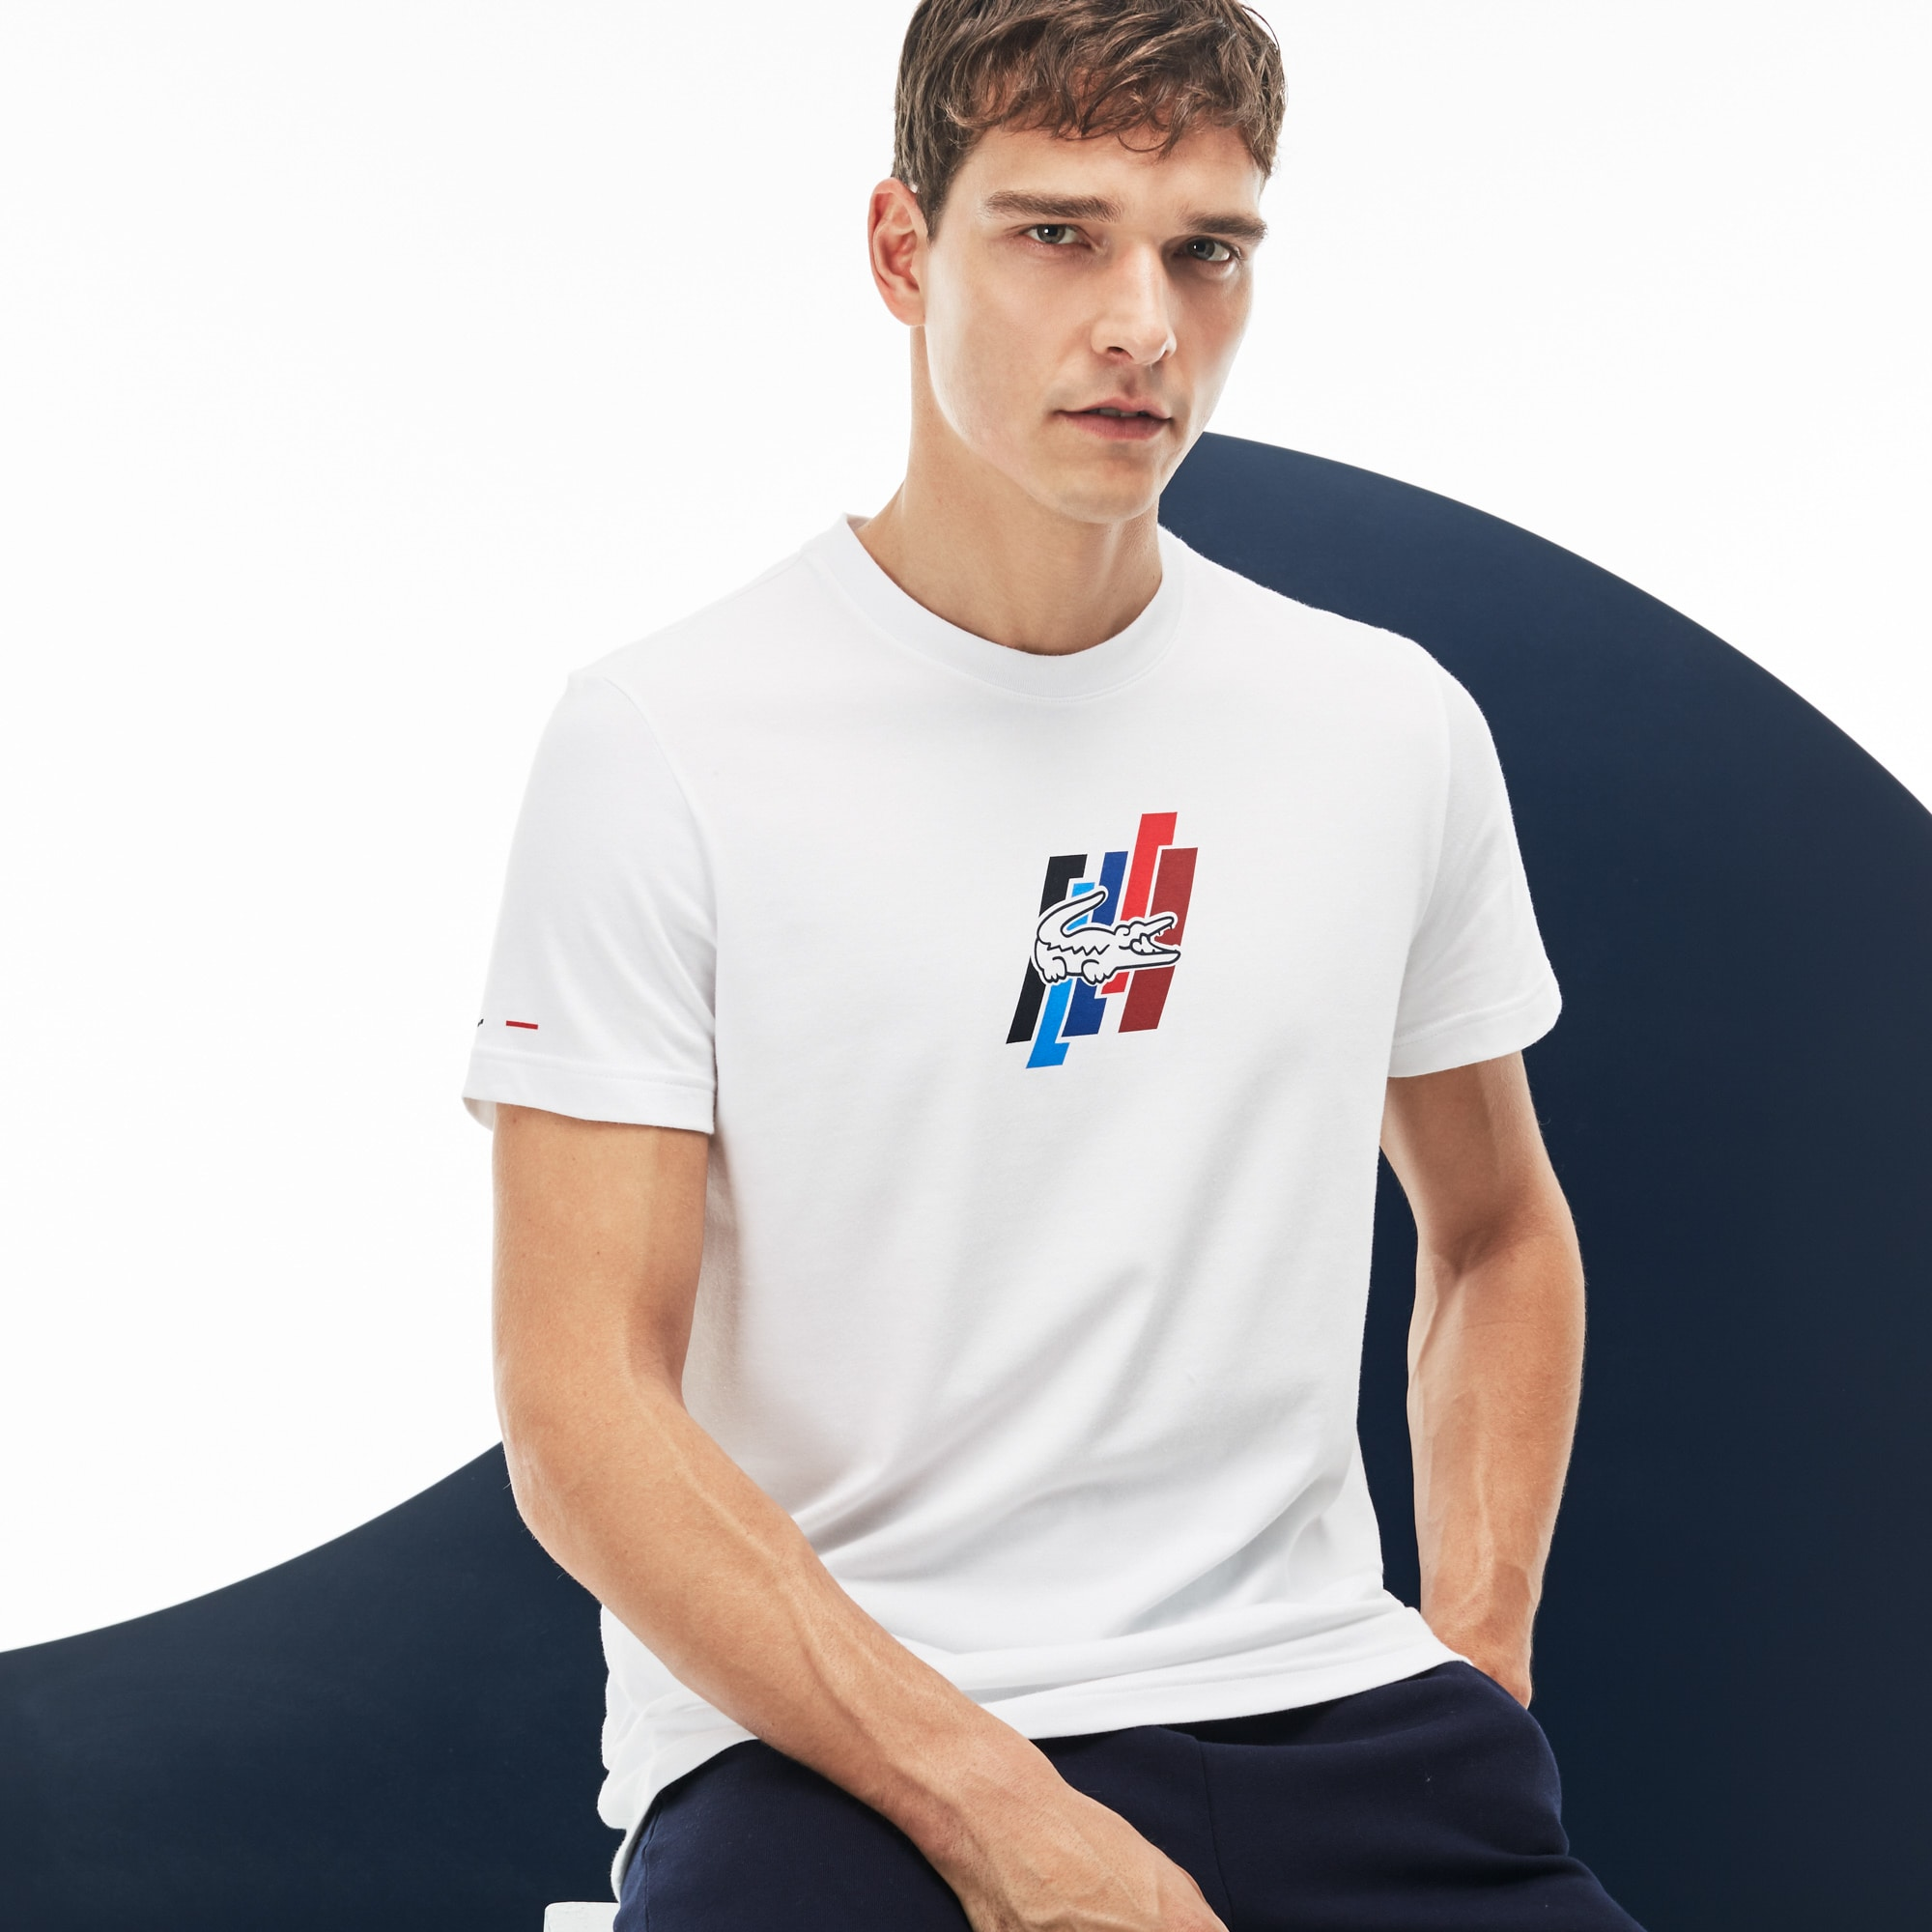 Men's Lacoste FRENCH SPORTING SPIRIT Edition Crew Neck Jersey T-shirt